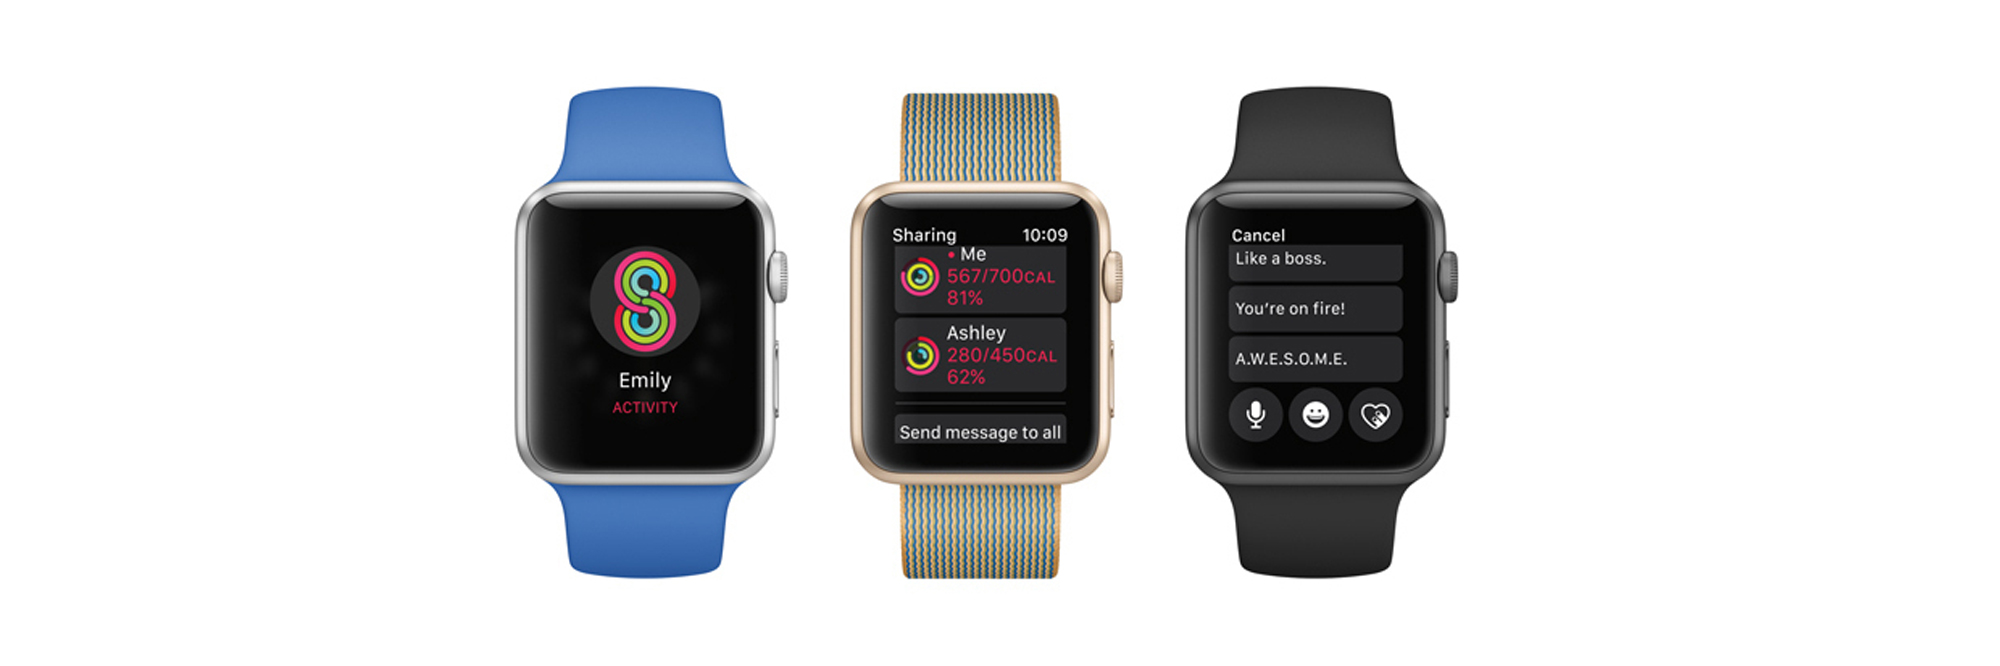 photo image Sharing Apple Watch Activity with Friends and Family